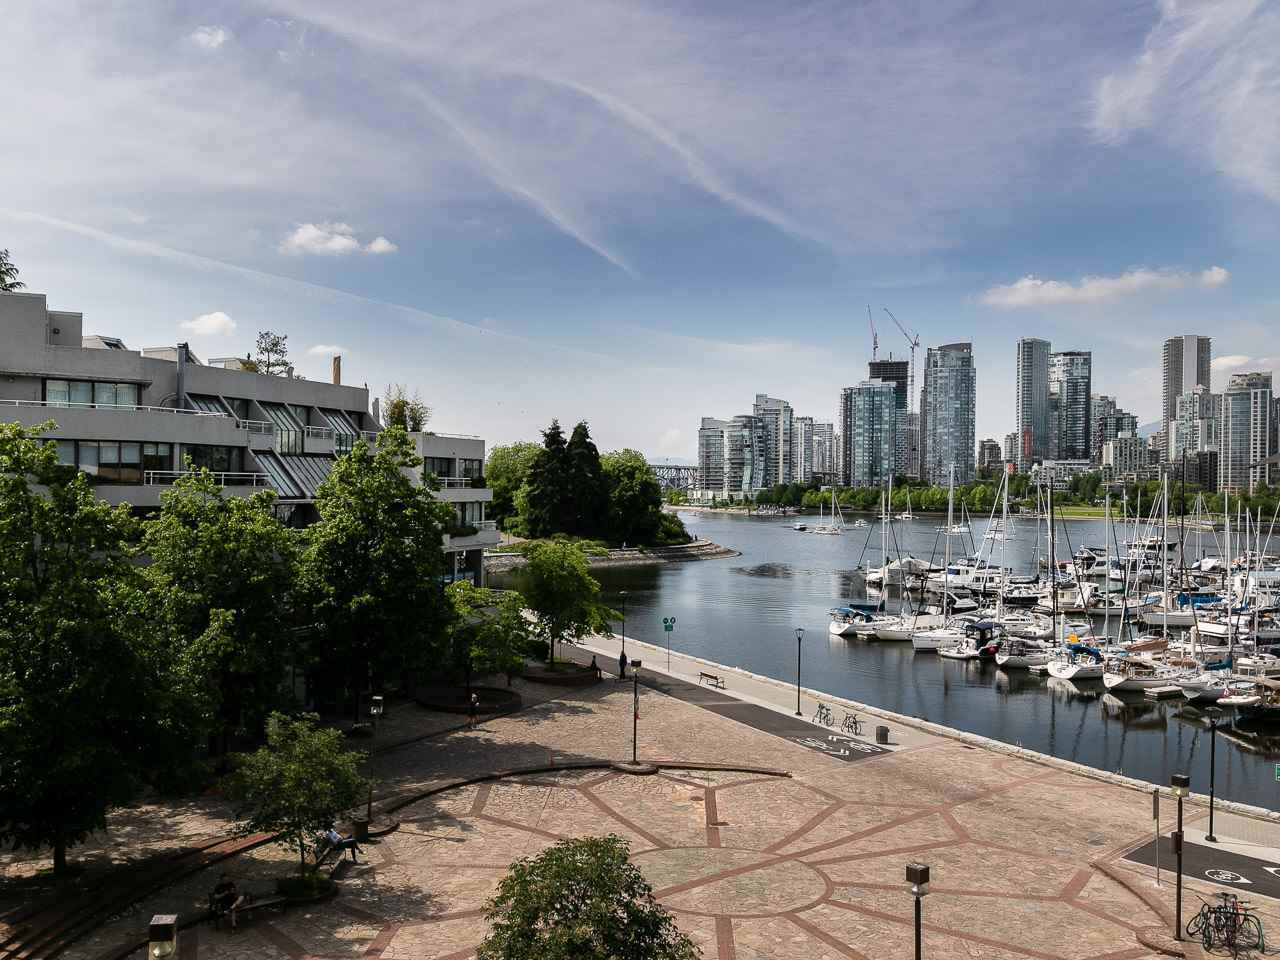 """Main Photo: 446 658 LEG IN BOOT Square in Vancouver: False Creek Condo for sale in """"Heather Bay Quay"""" (Vancouver West)  : MLS®# R2445945"""